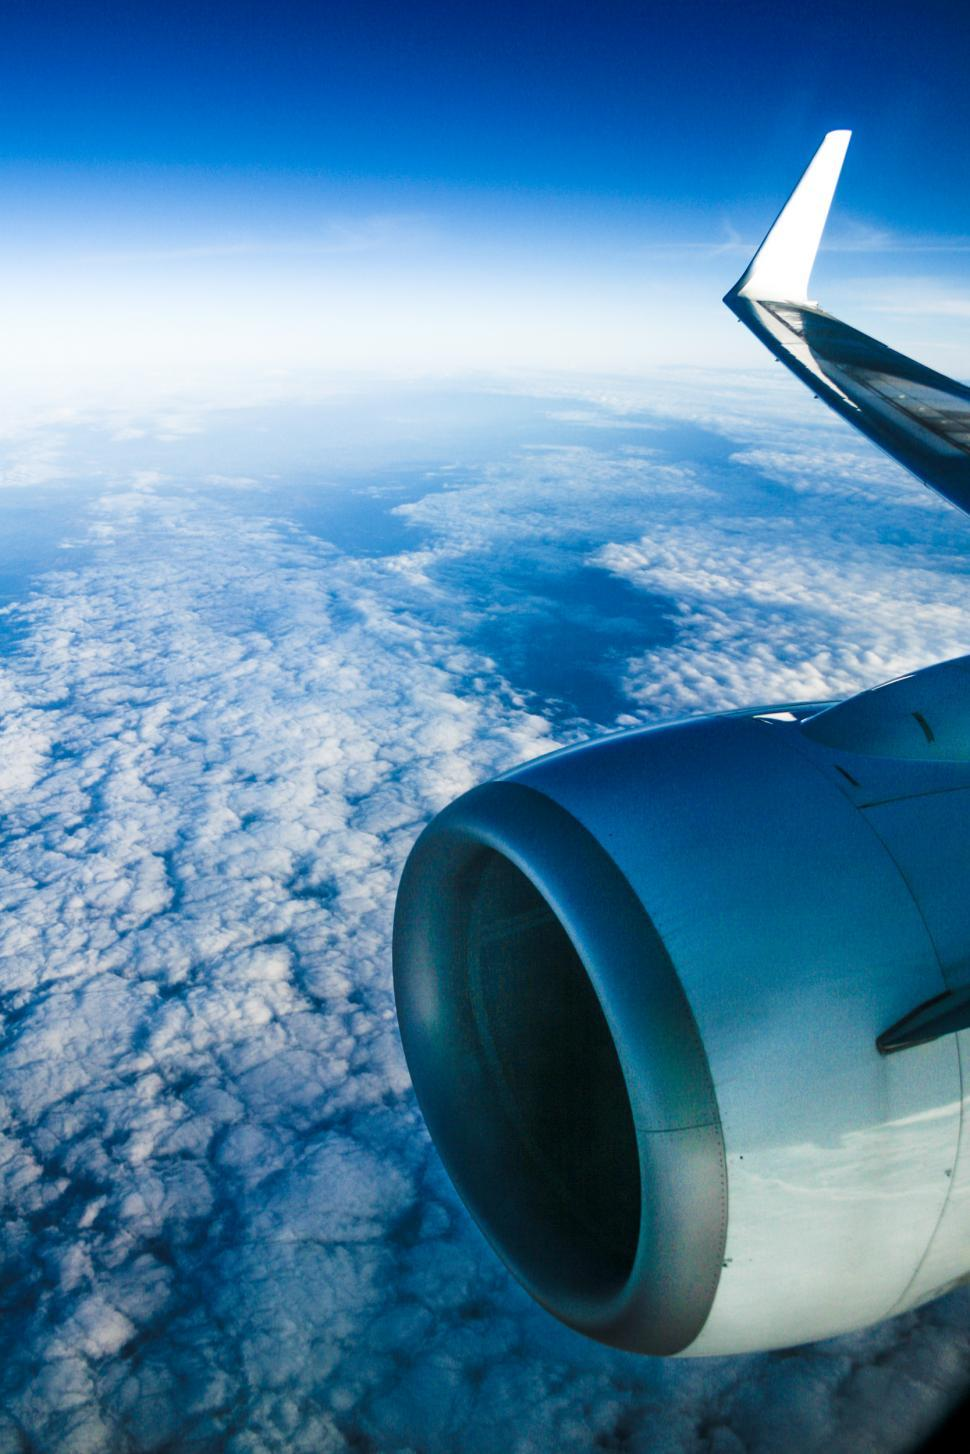 Download Free Stock Photo of view from the airplane window